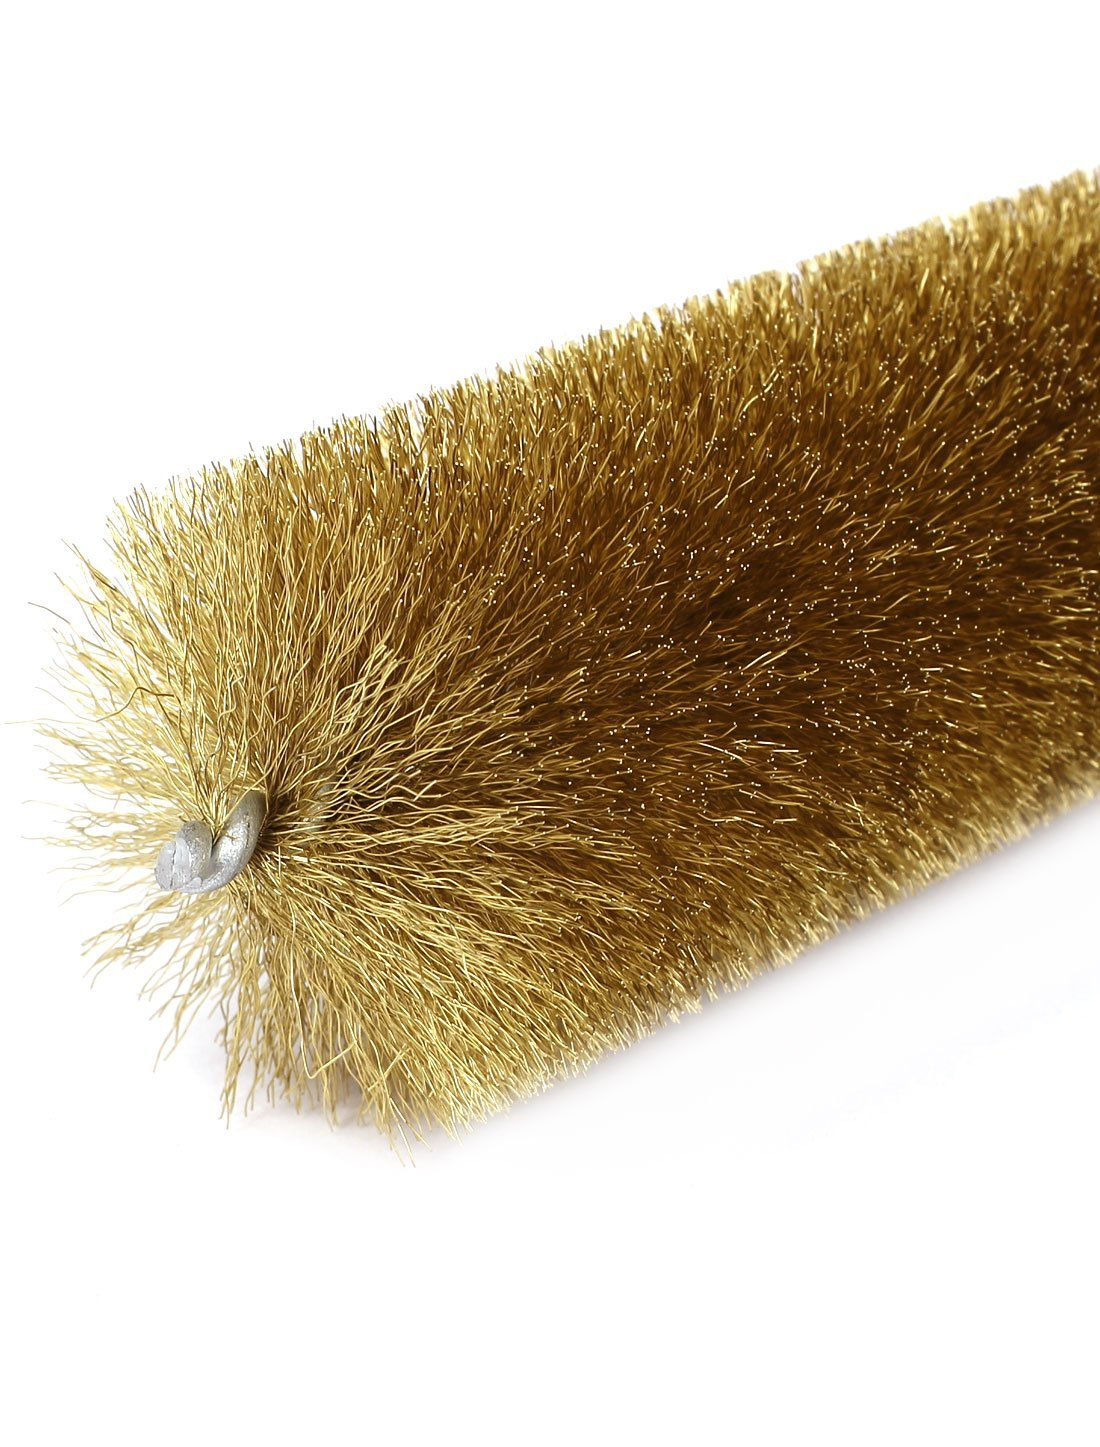 16cm Length 45mm Dia Spiral Twisted Brass Wire Tube Cleaning Brush